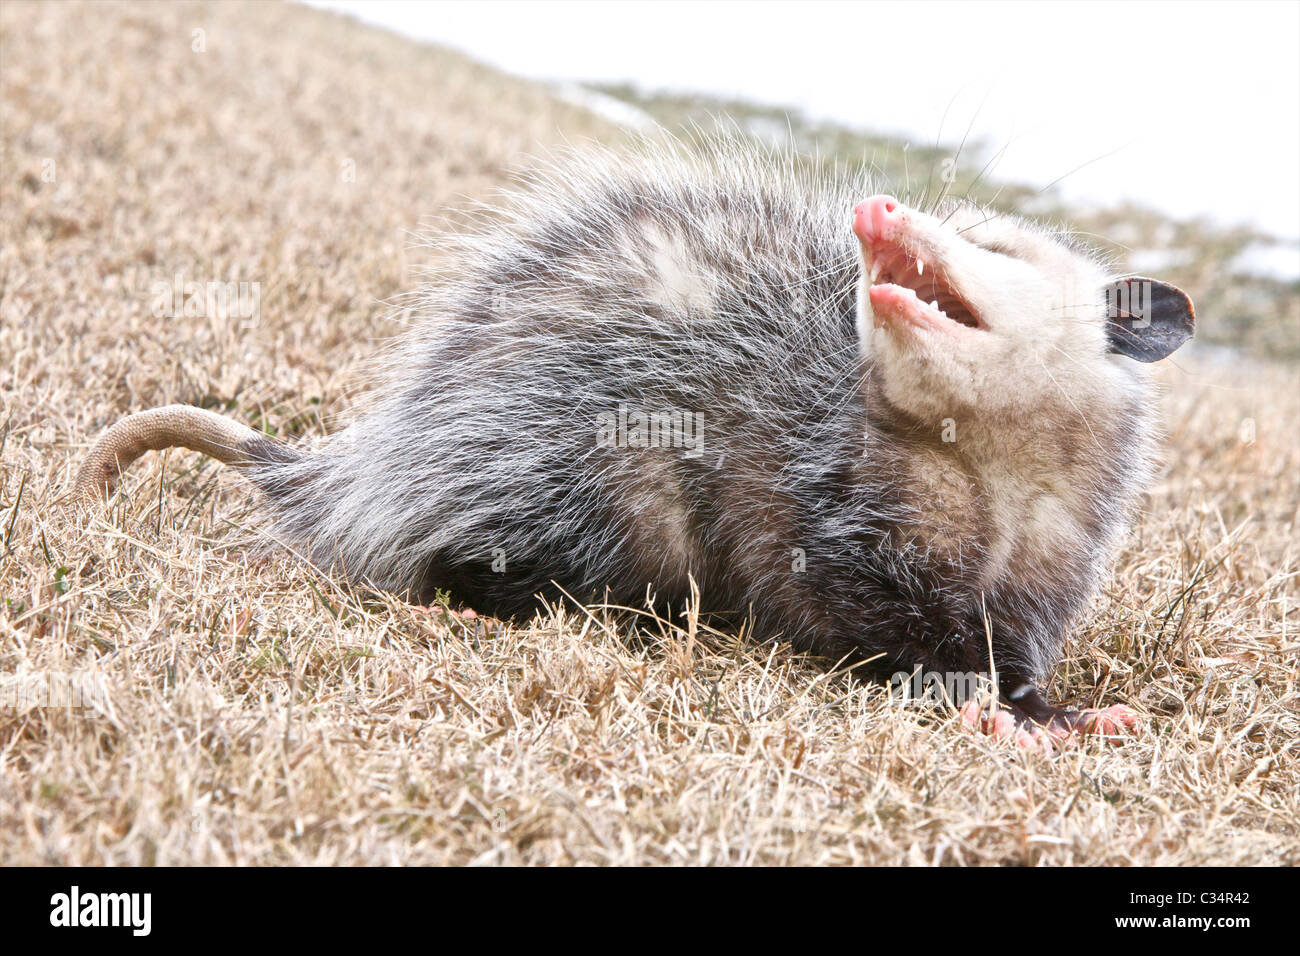 A Common Opossum appears to grin as it snarls on a winter day.  There is snow in the background and on the Opossum's - Stock Image